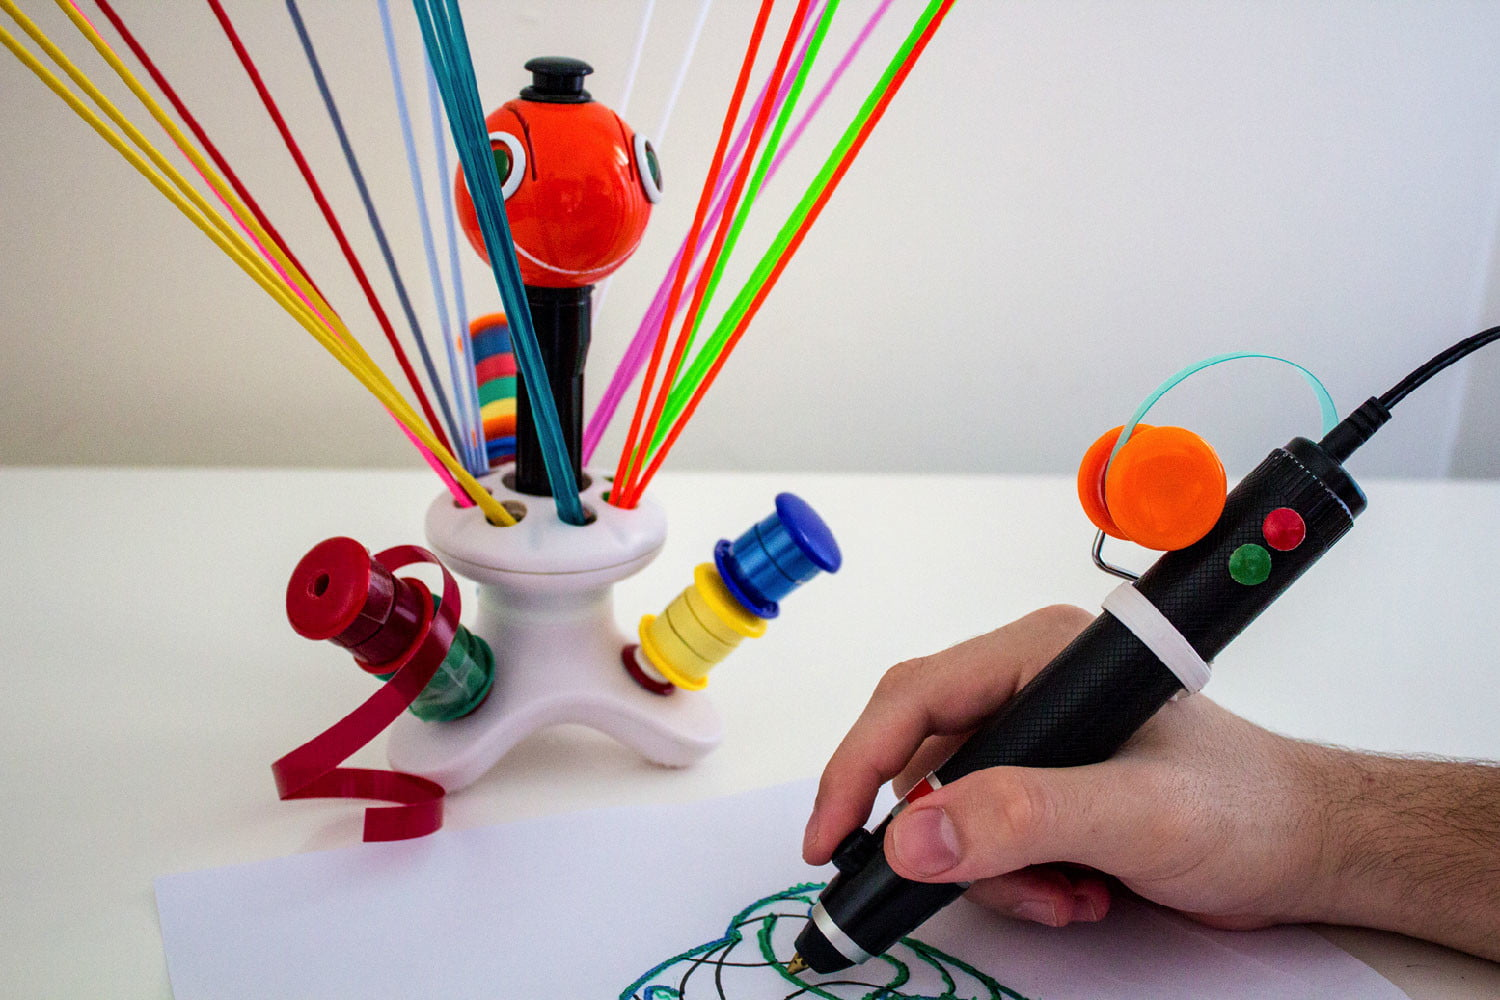 awesome tech you cant buy yet zafirro renegade cyclotron  waste plastic 3d printing pen